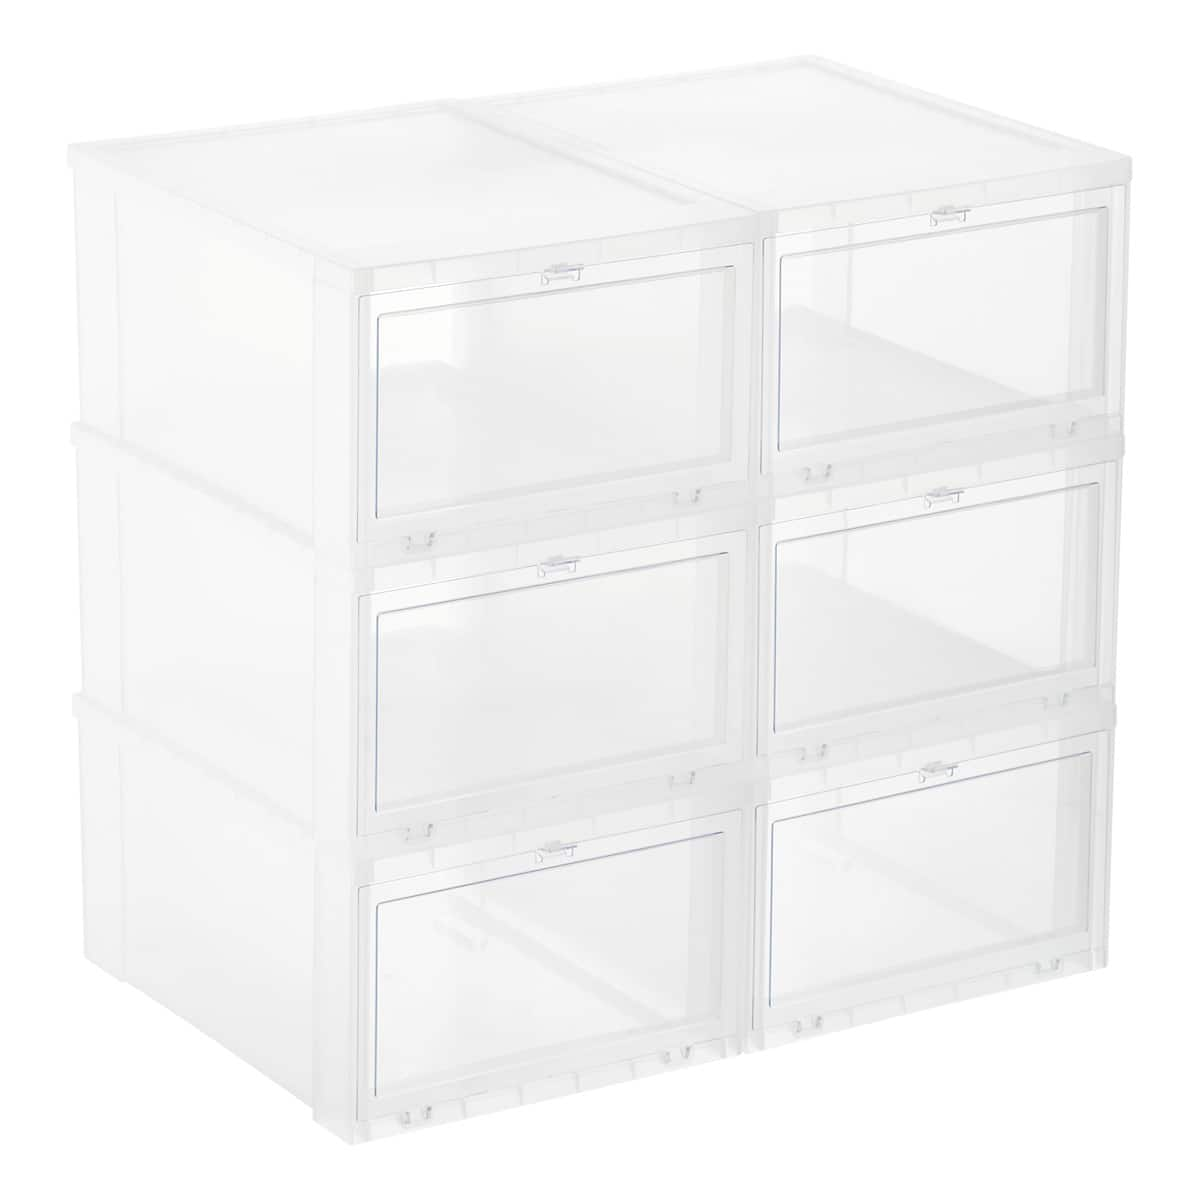 Save 30% off 6 Men's Translucent Drop-Front Shoe Box - $37.80  today only @ The Container Store